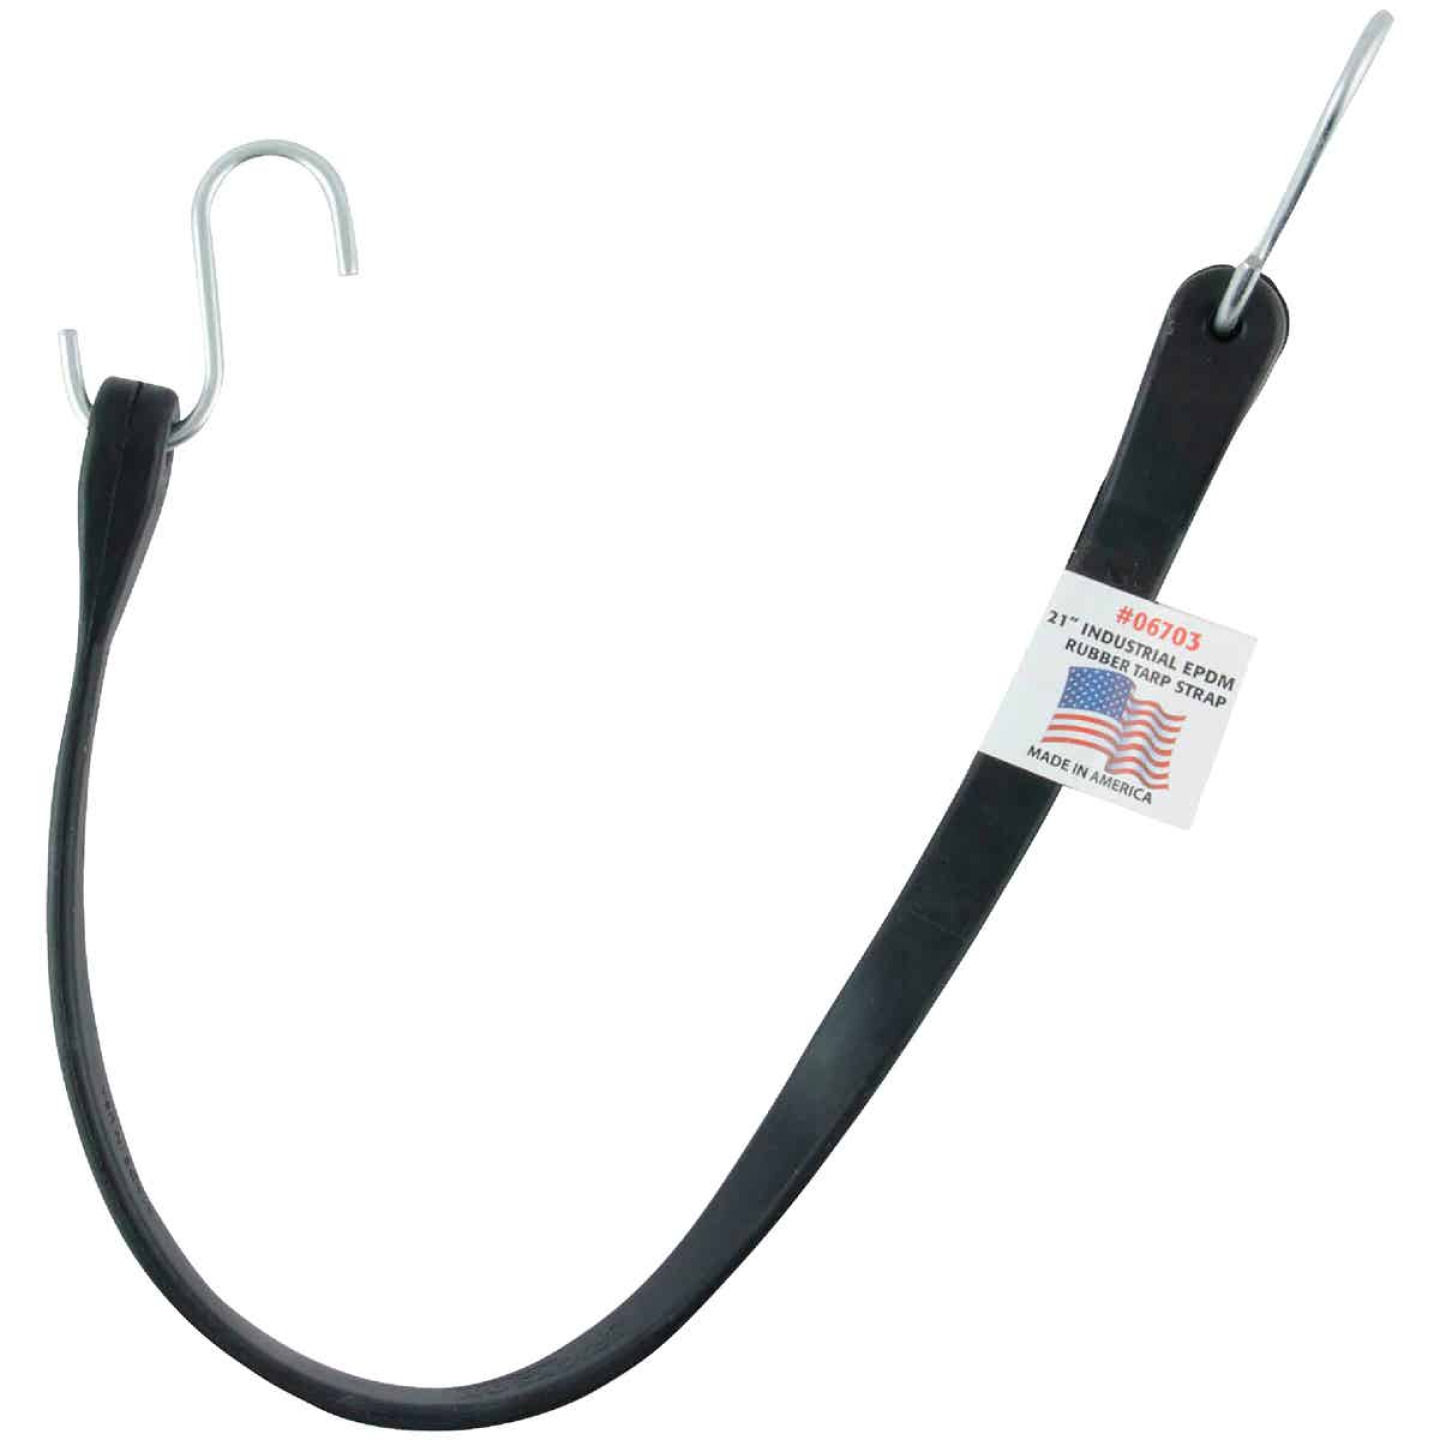 Erickson 24 In. Hook-to-Hook Black Industrial EDPM Rubber Tarp Strap Image 1